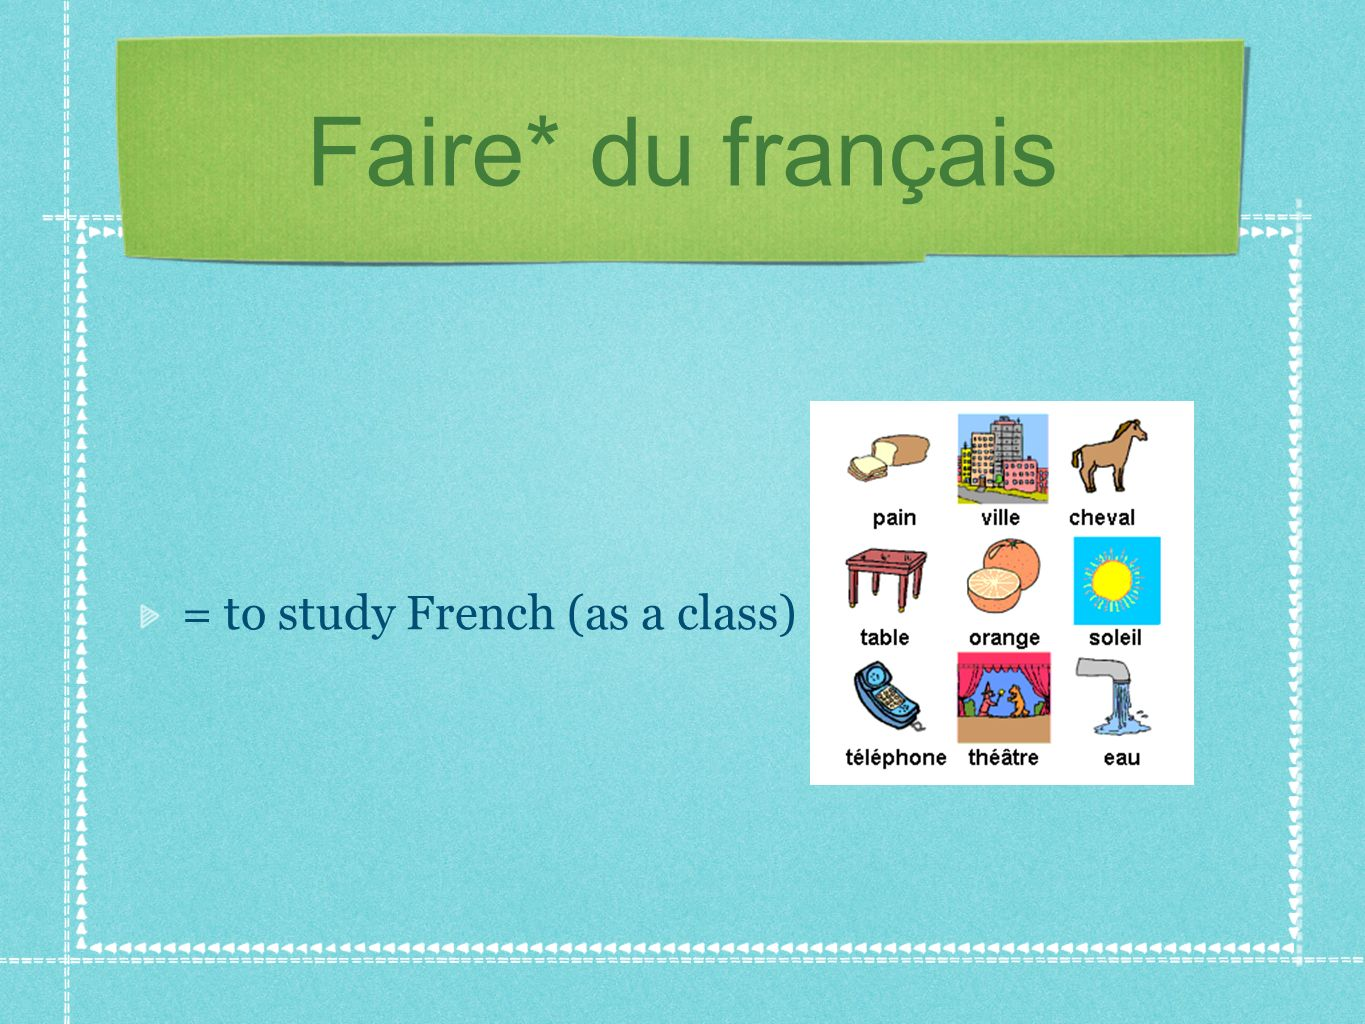 Faire* du français = to study French (as a class)